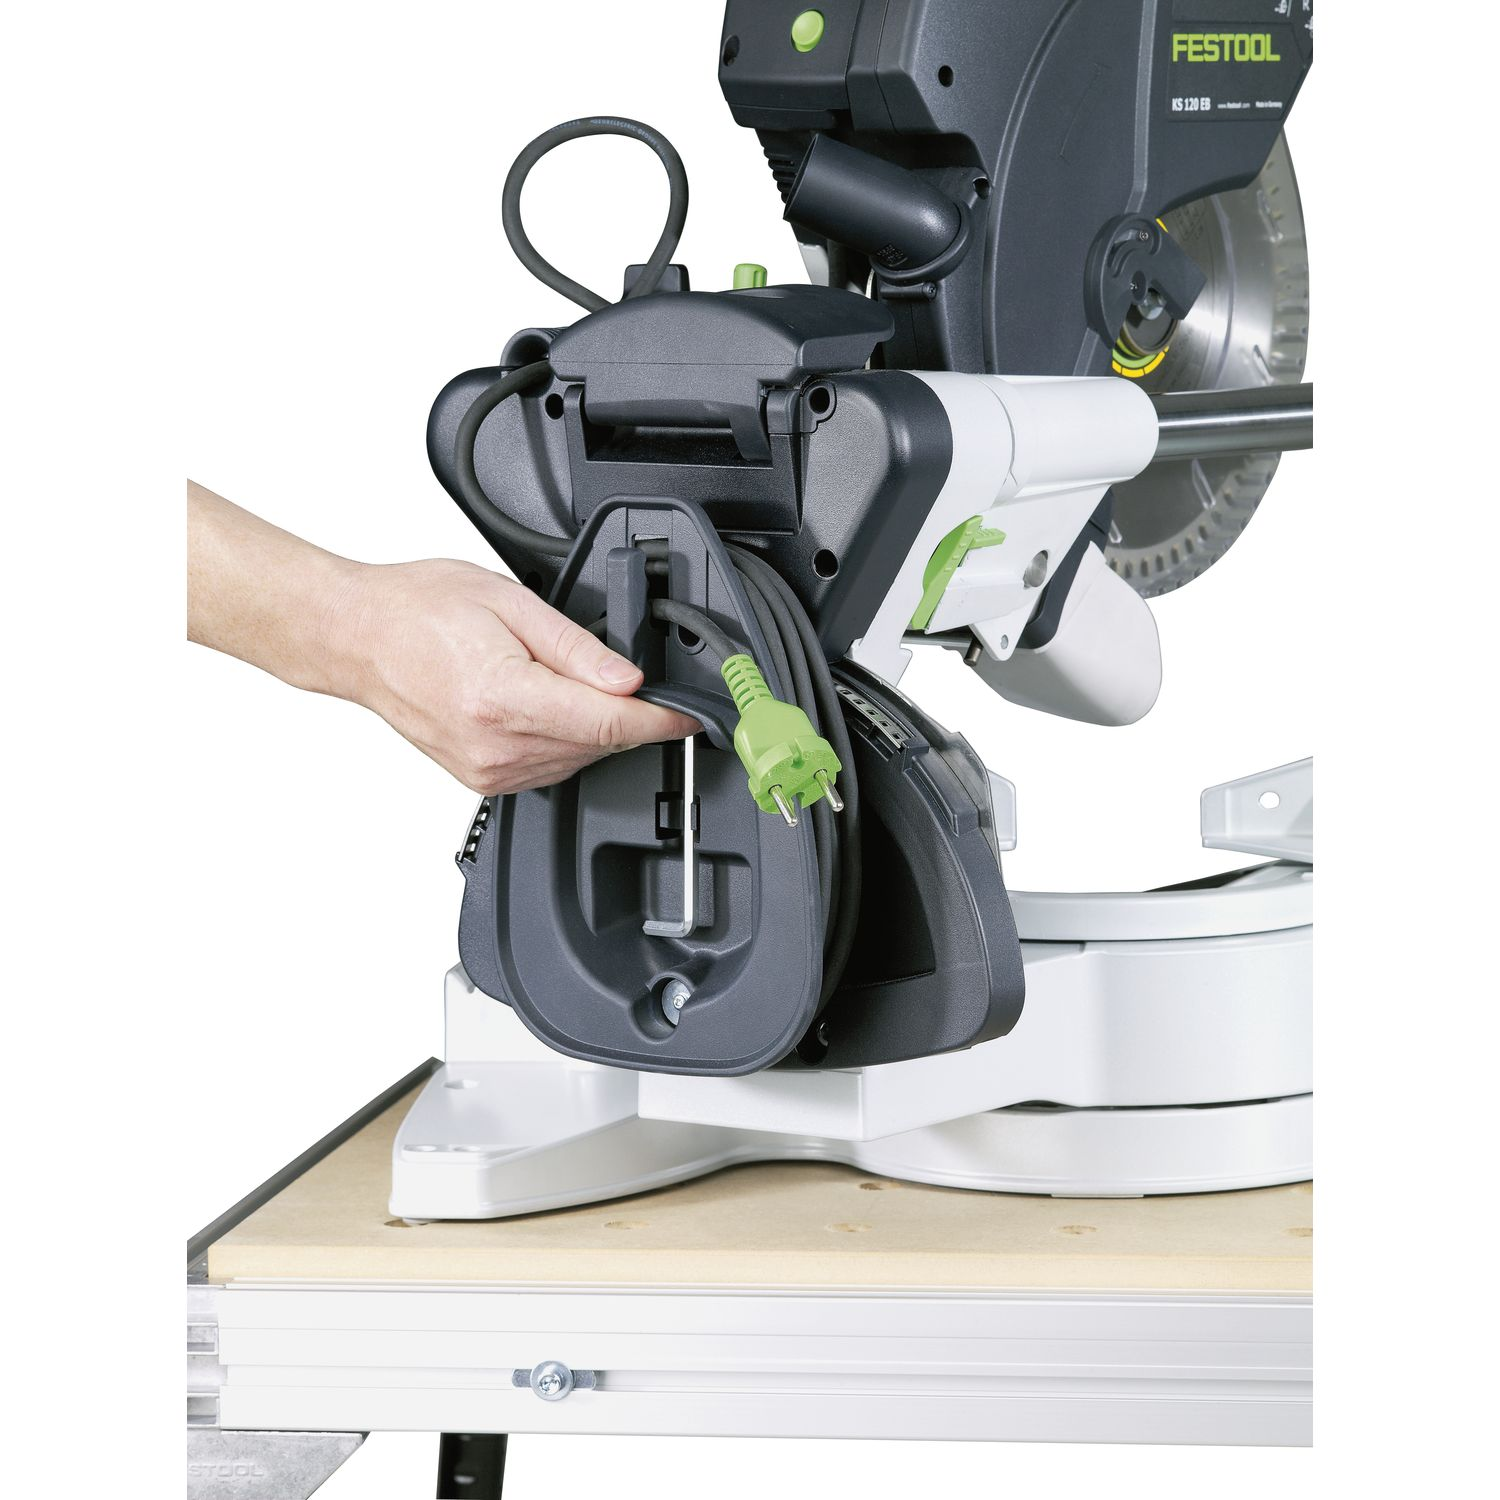 festool kapp und zugs ge ks 120 eb. Black Bedroom Furniture Sets. Home Design Ideas